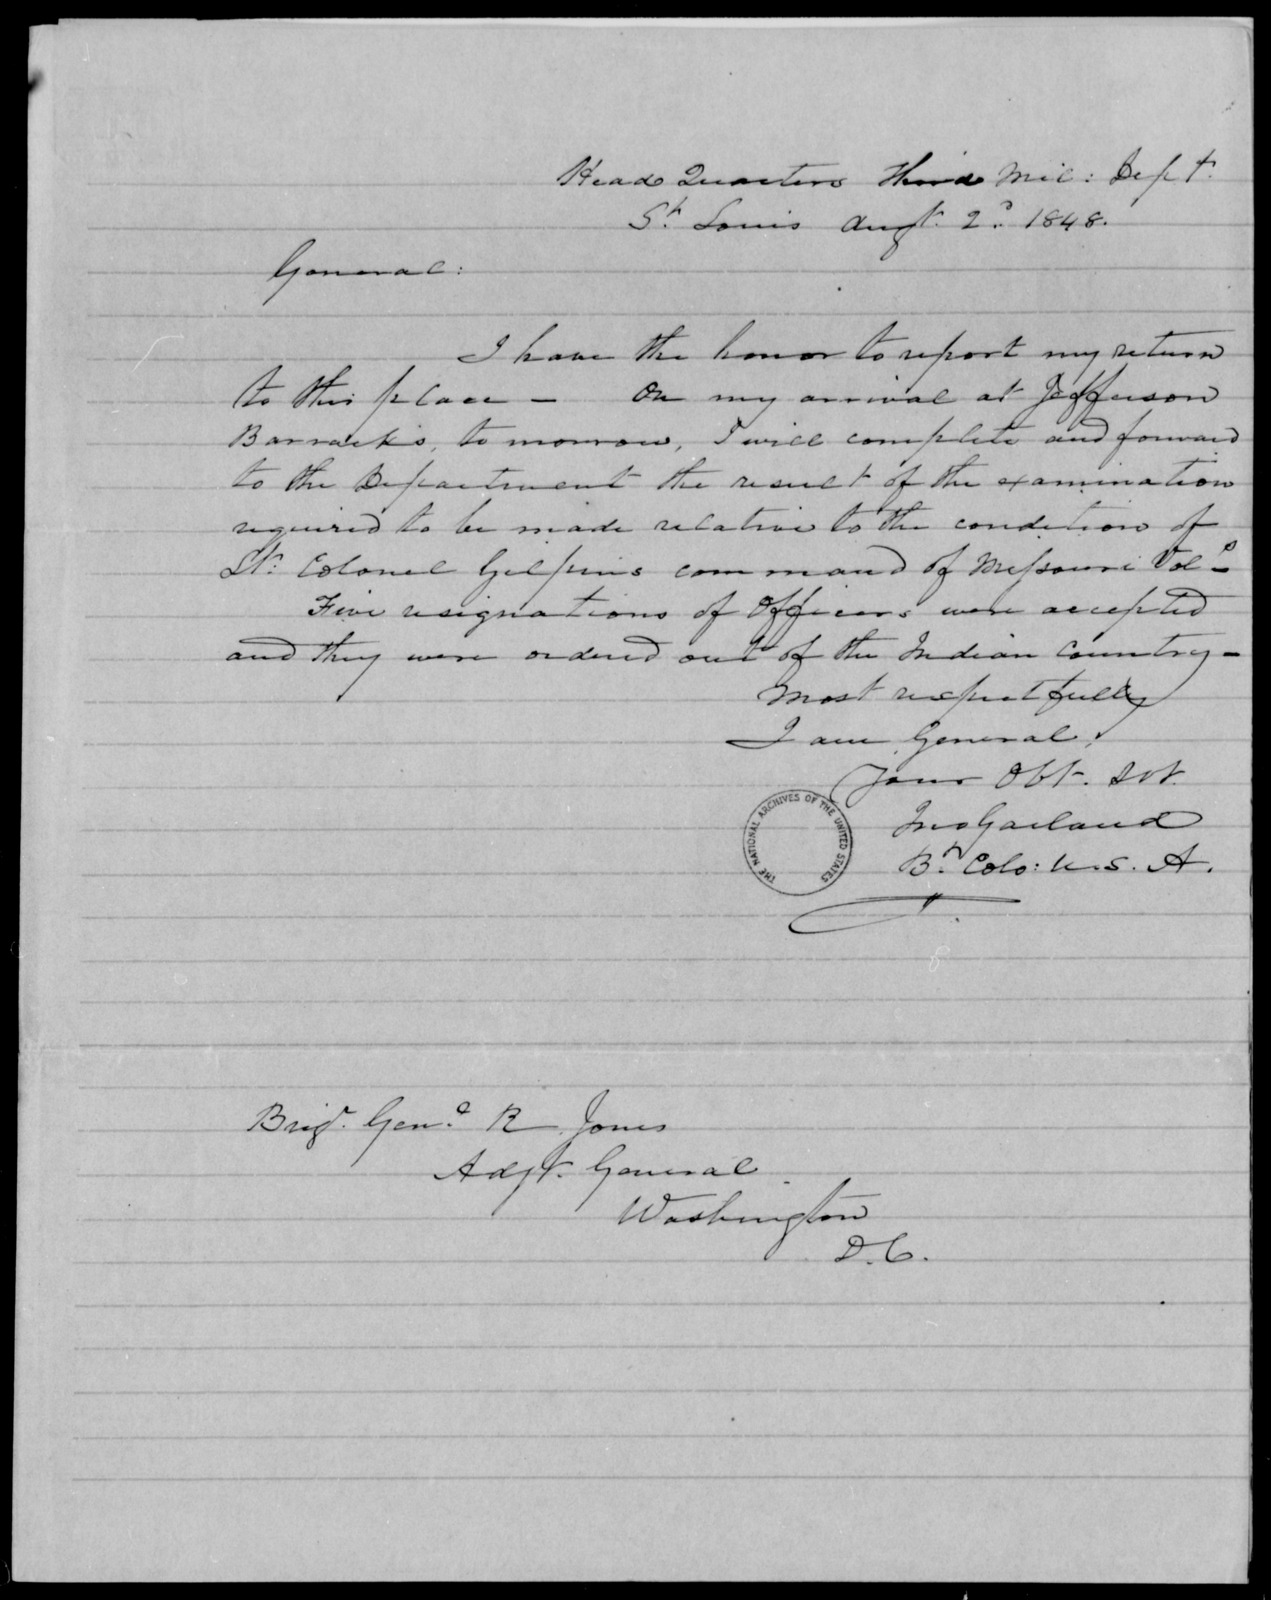 Garland, Jno - State: [Blank] - Year: 1848 - File Number: G339